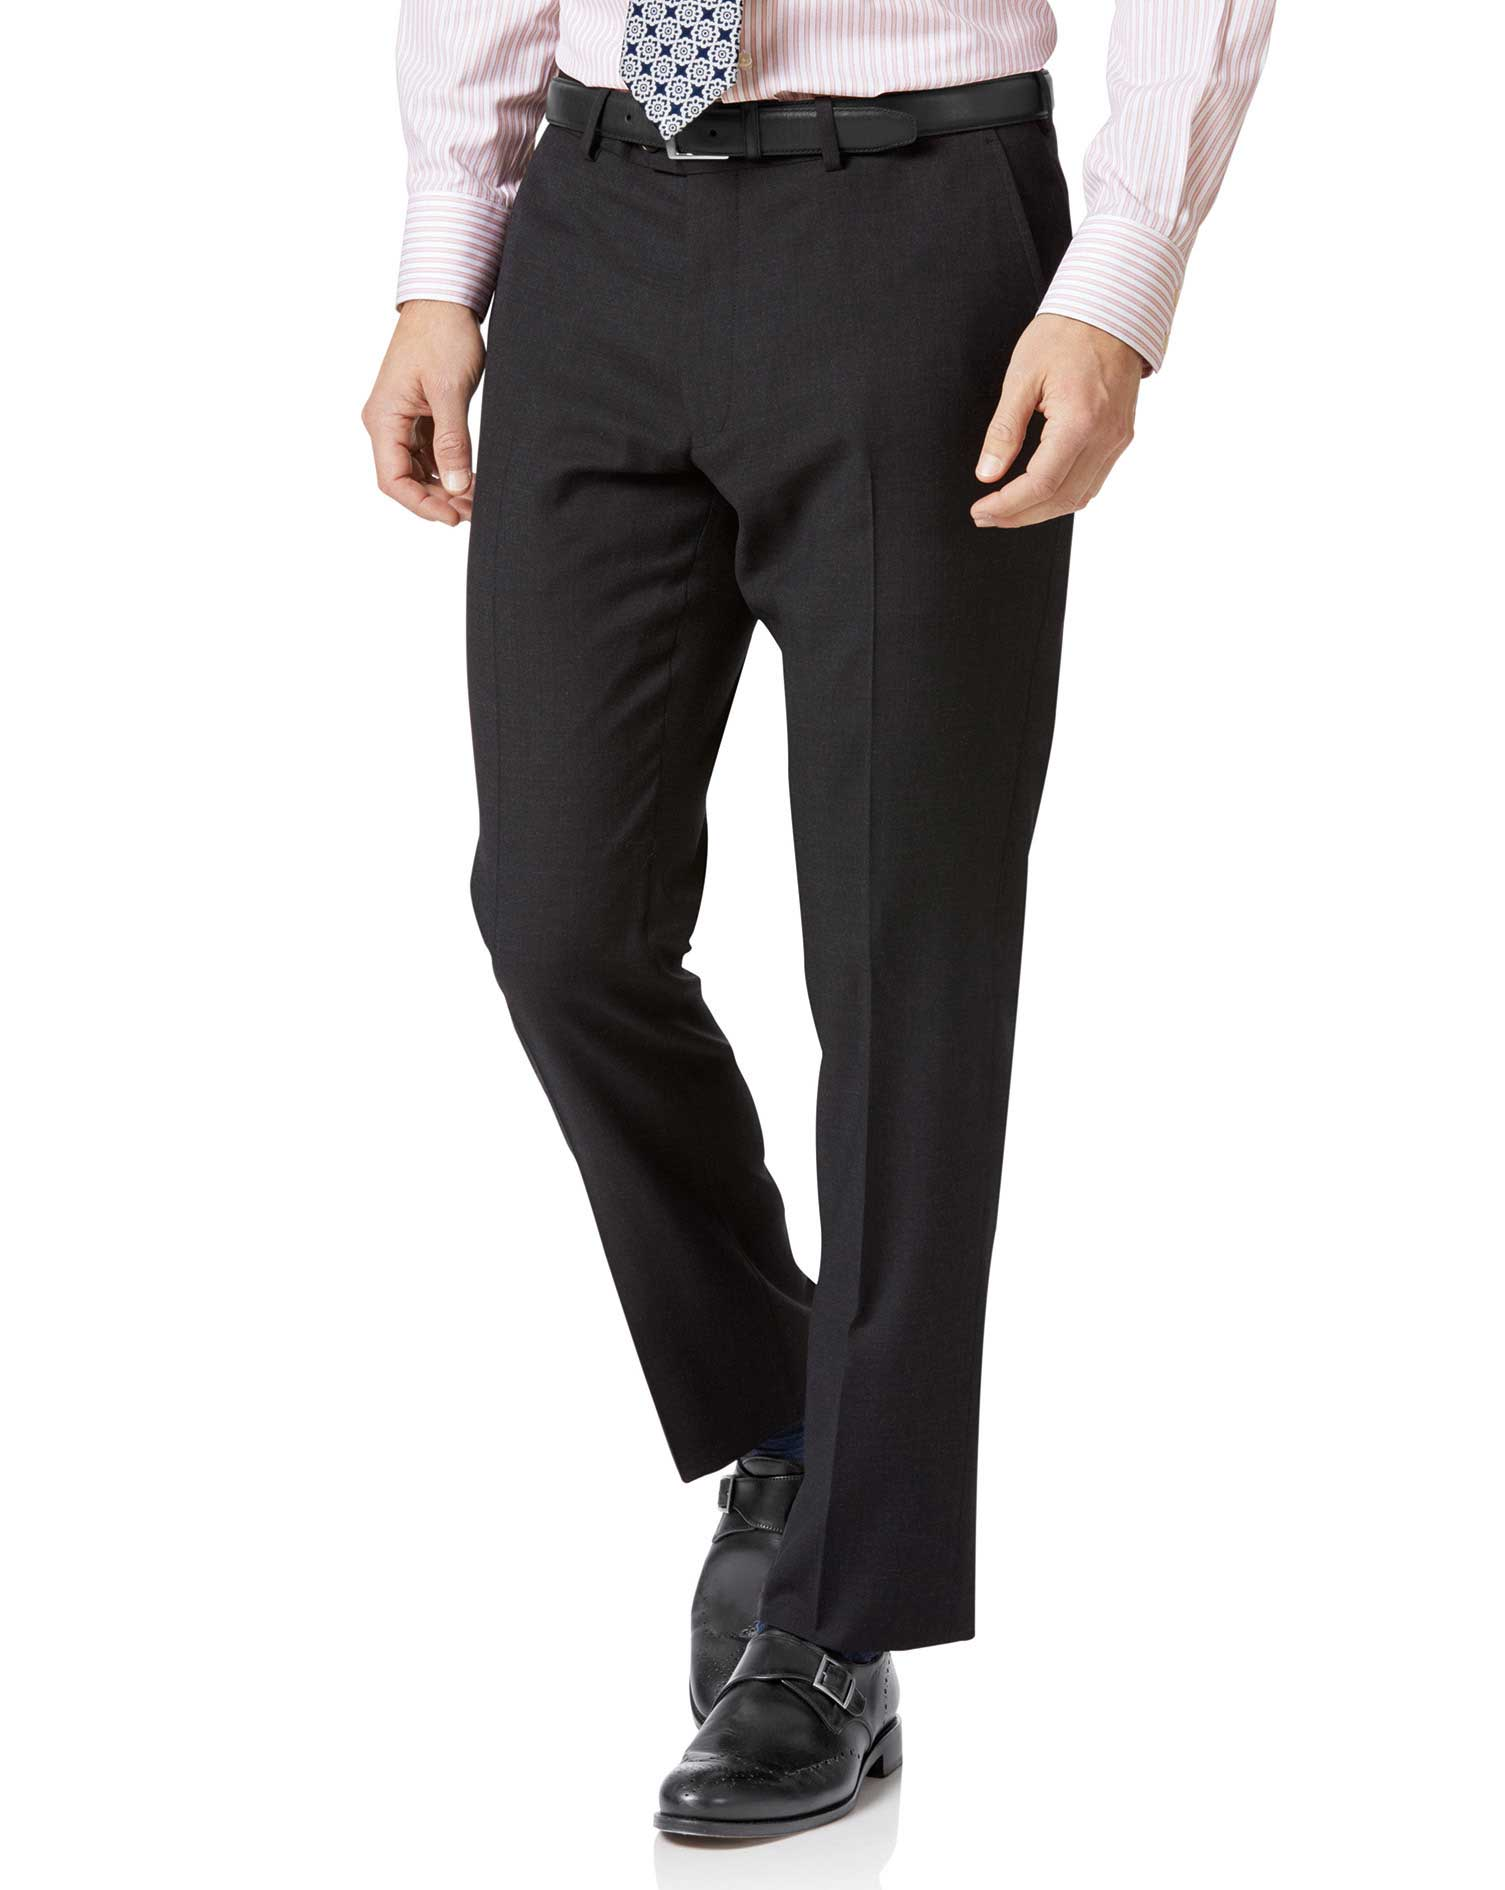 Charcoal Slim Fit Twill Business Suit Trousers Size W36 L30 by Charles Tyrwhitt